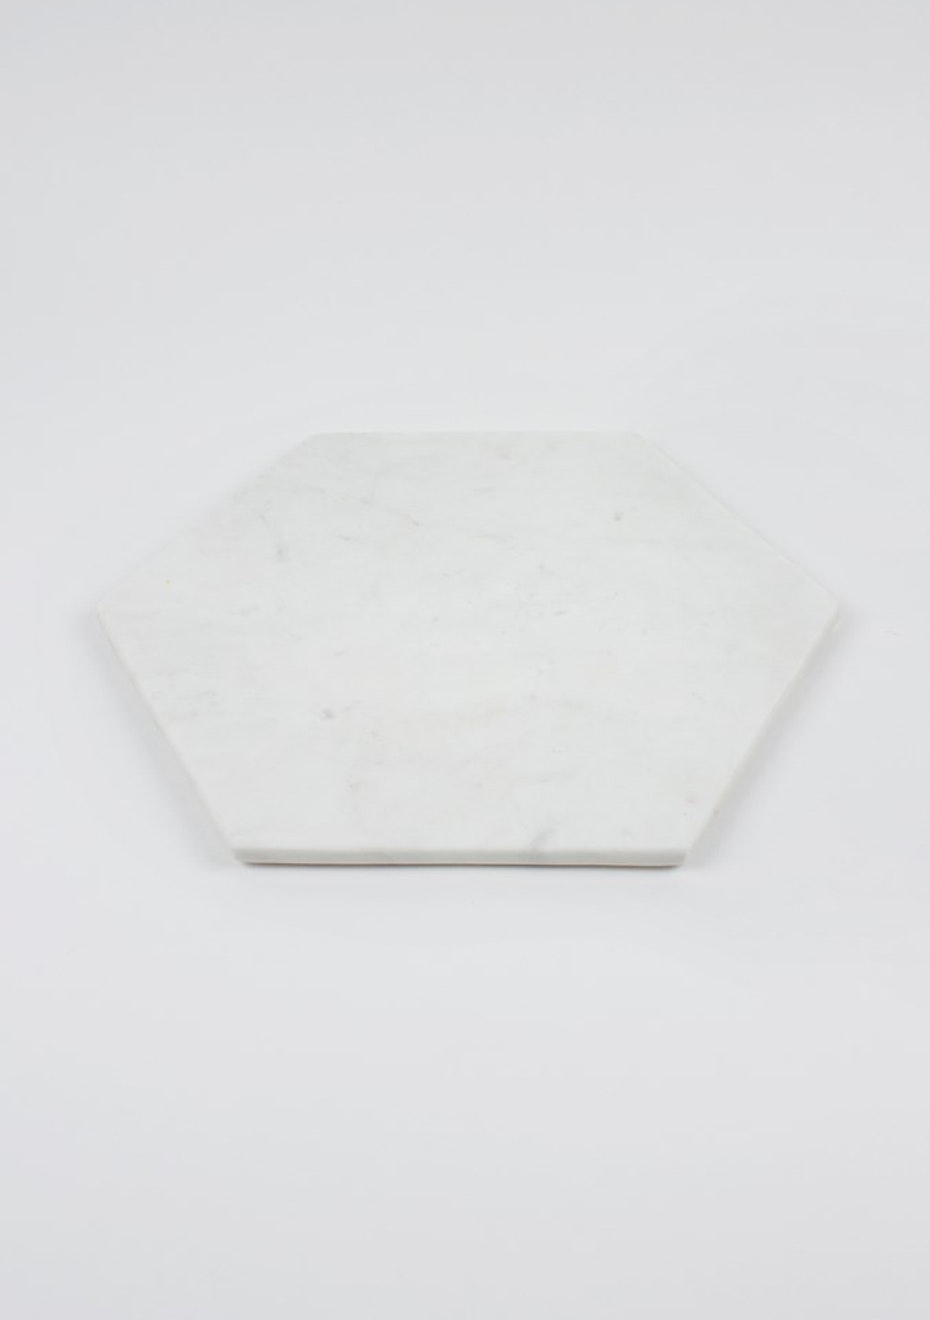 Nest - White Marble Hexagon Board Medium